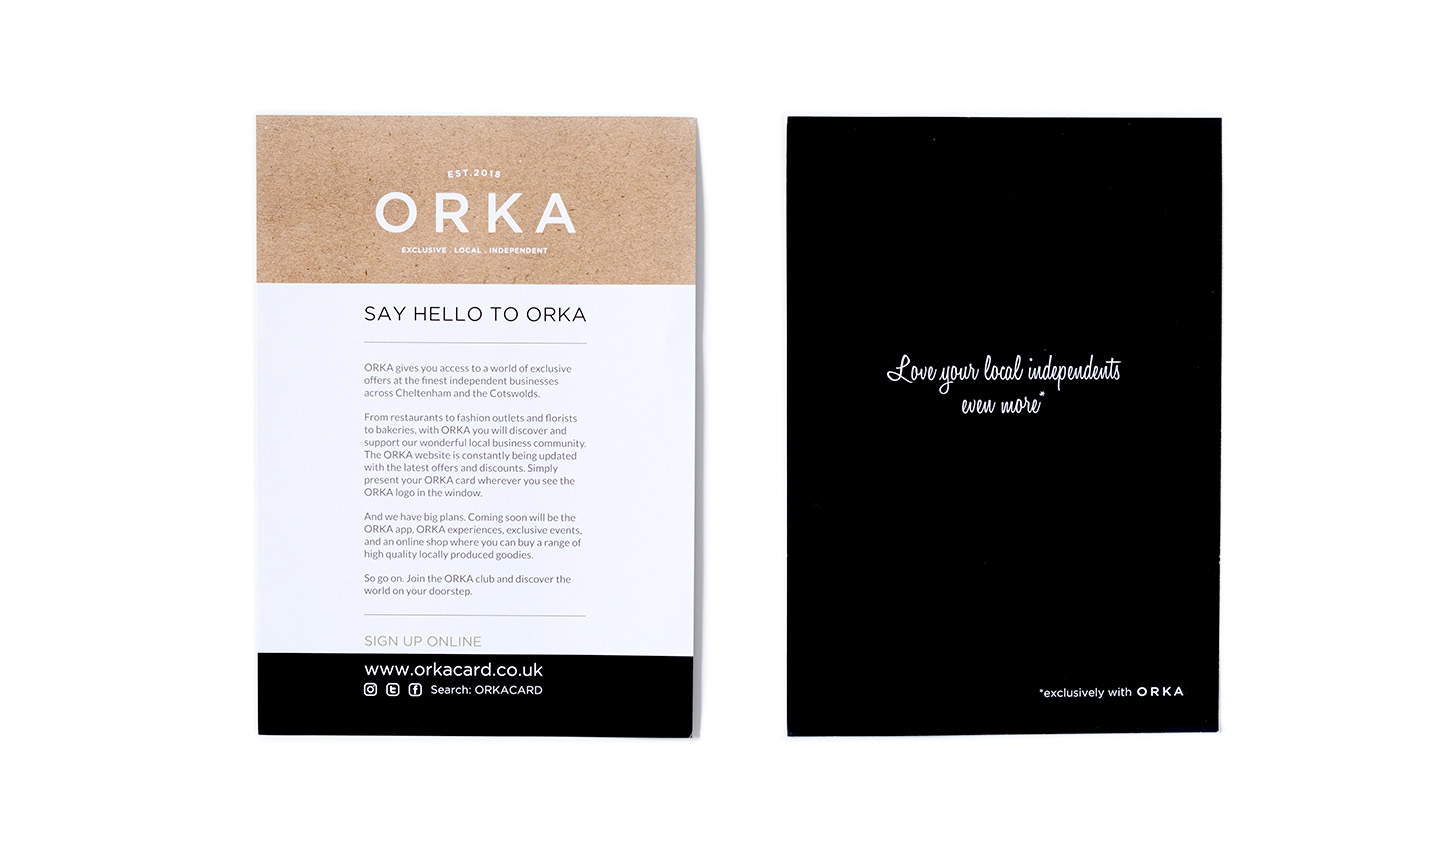 http://rusyndesign.co.uk/wp-content/uploads/2021/02/ORKA-03.jpg